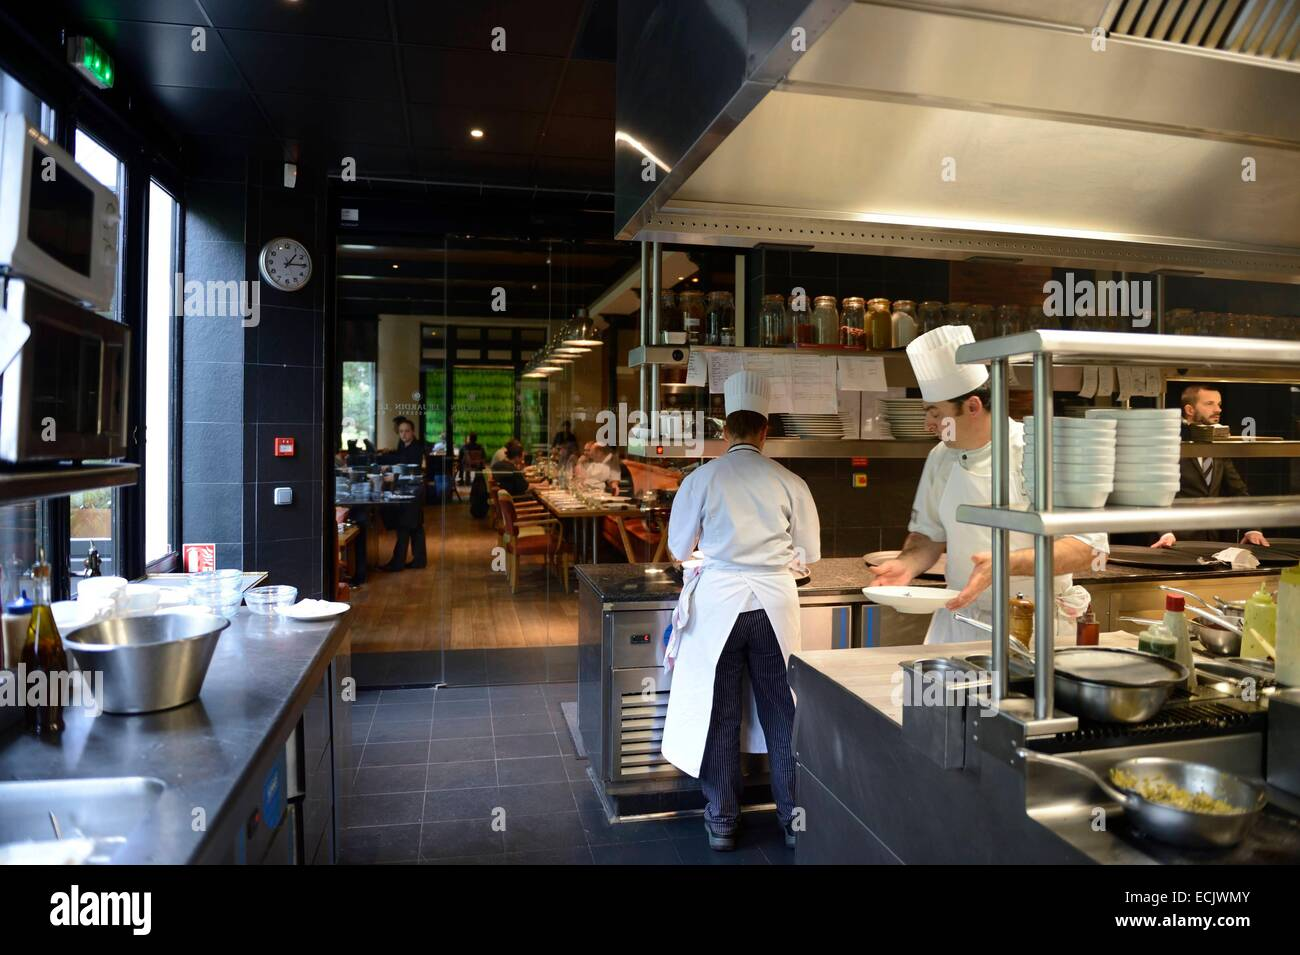 France marne reims brasserie le jardin in the domaine le cray res stock photo 76632667 alamy - Restaurant le jardin reims crayeres ...